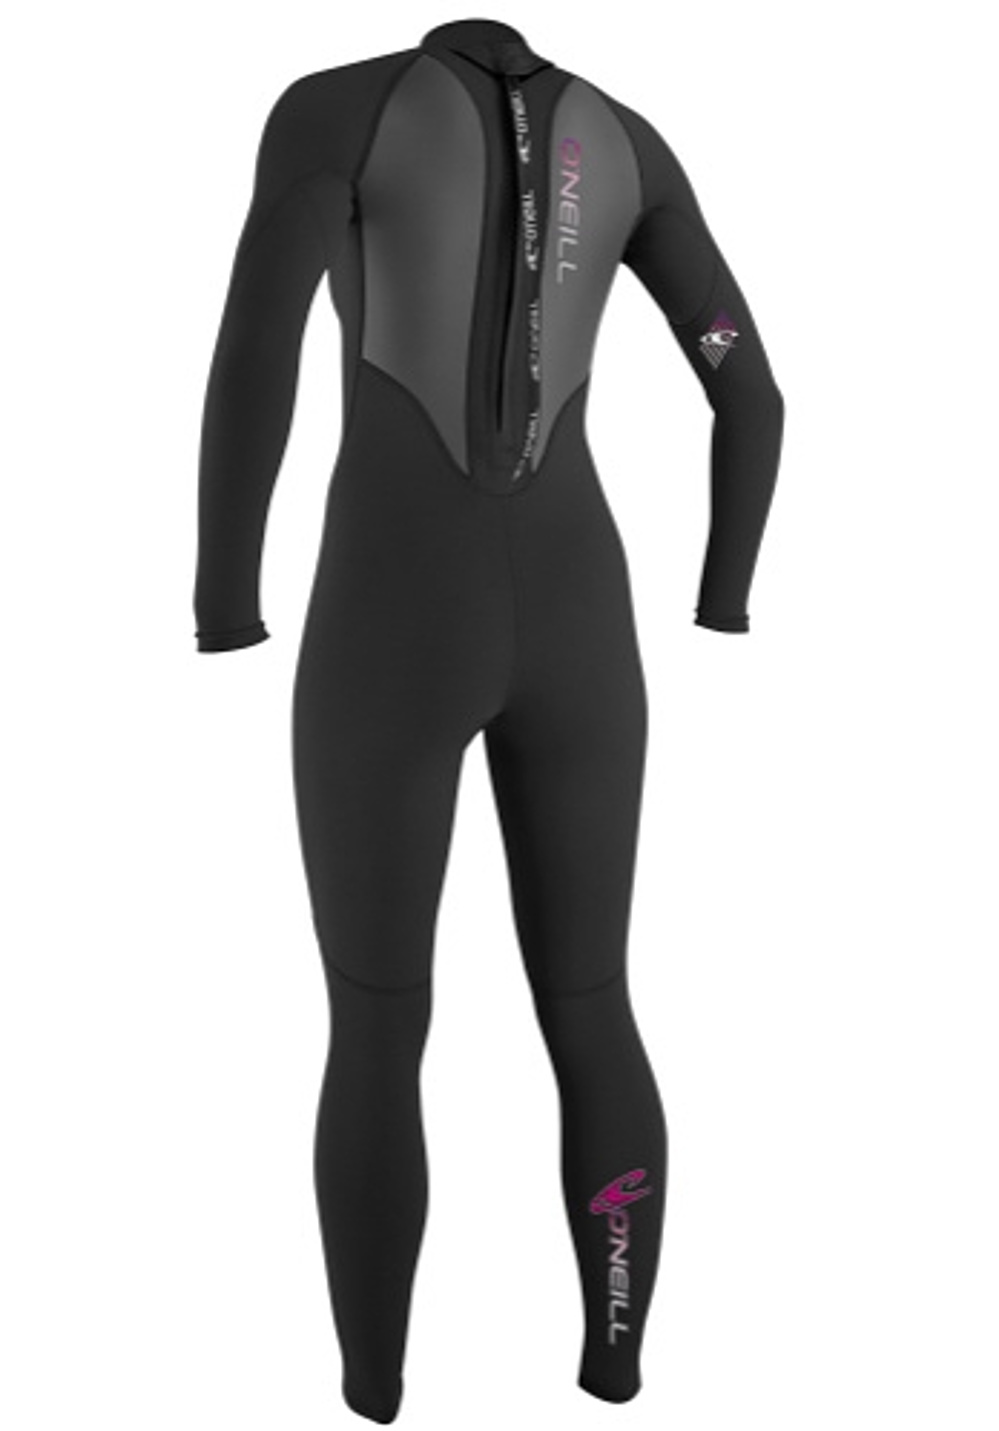 O Neill Reactor 3 2mm - Wetsuit for Women - Black - Planet Sports 7db4e5c3a